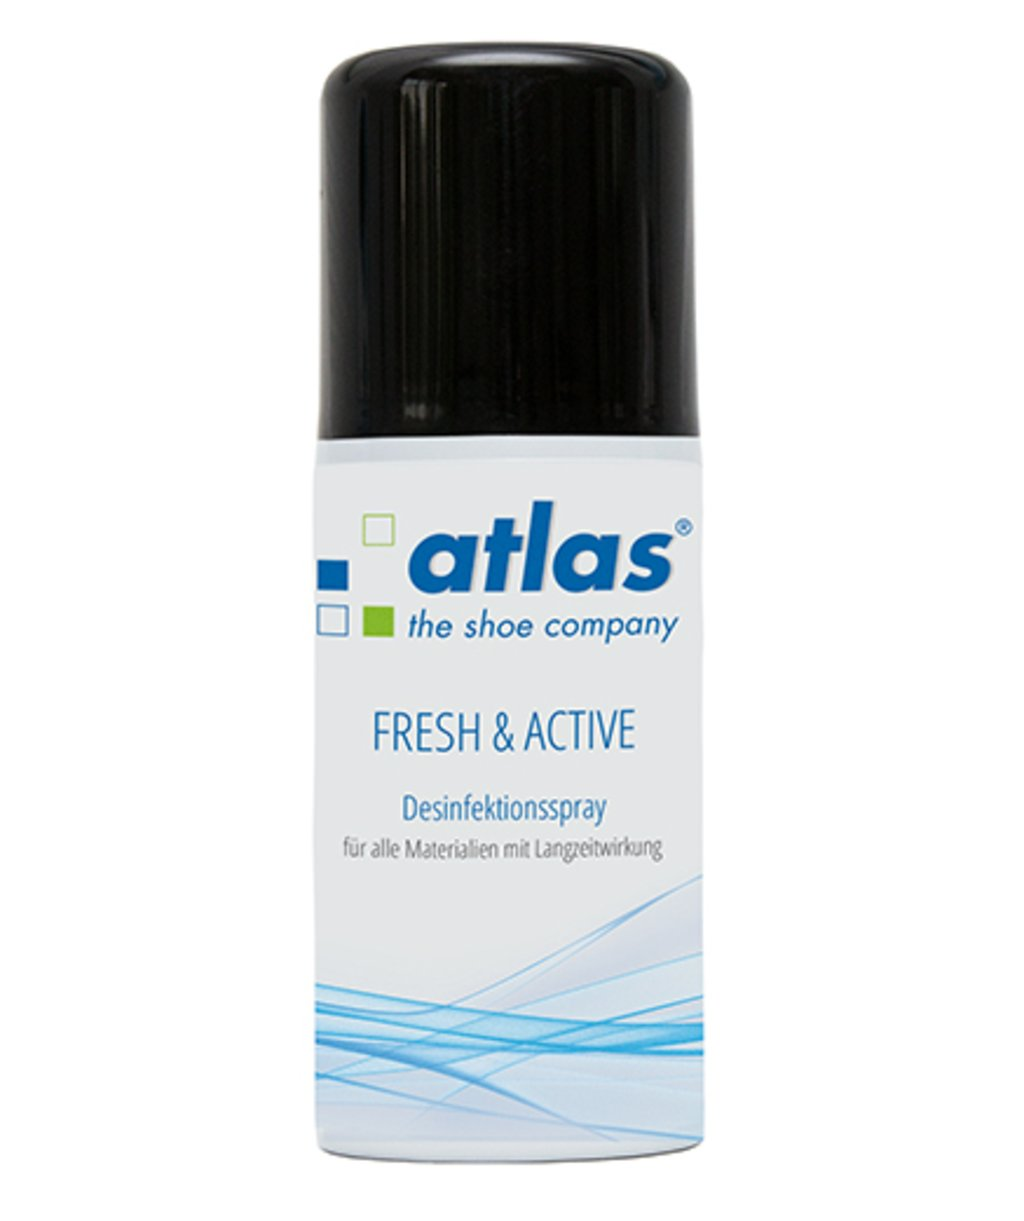 Atlas Fresh & Active desinfektionsspray, 150 ml, Transparent